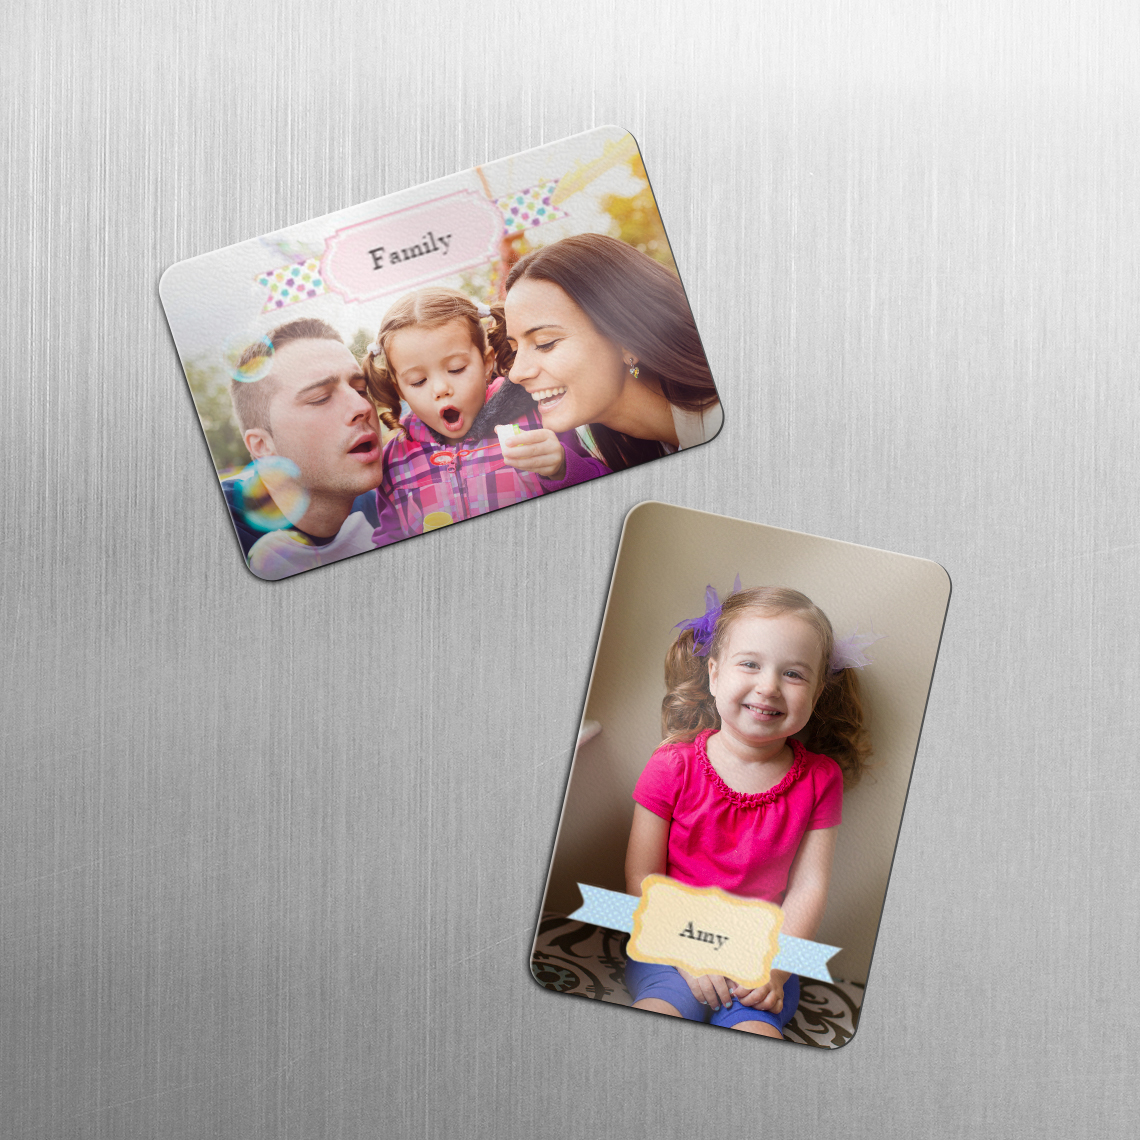 3x2 personalised photo fridge magnet magnets children s gifts